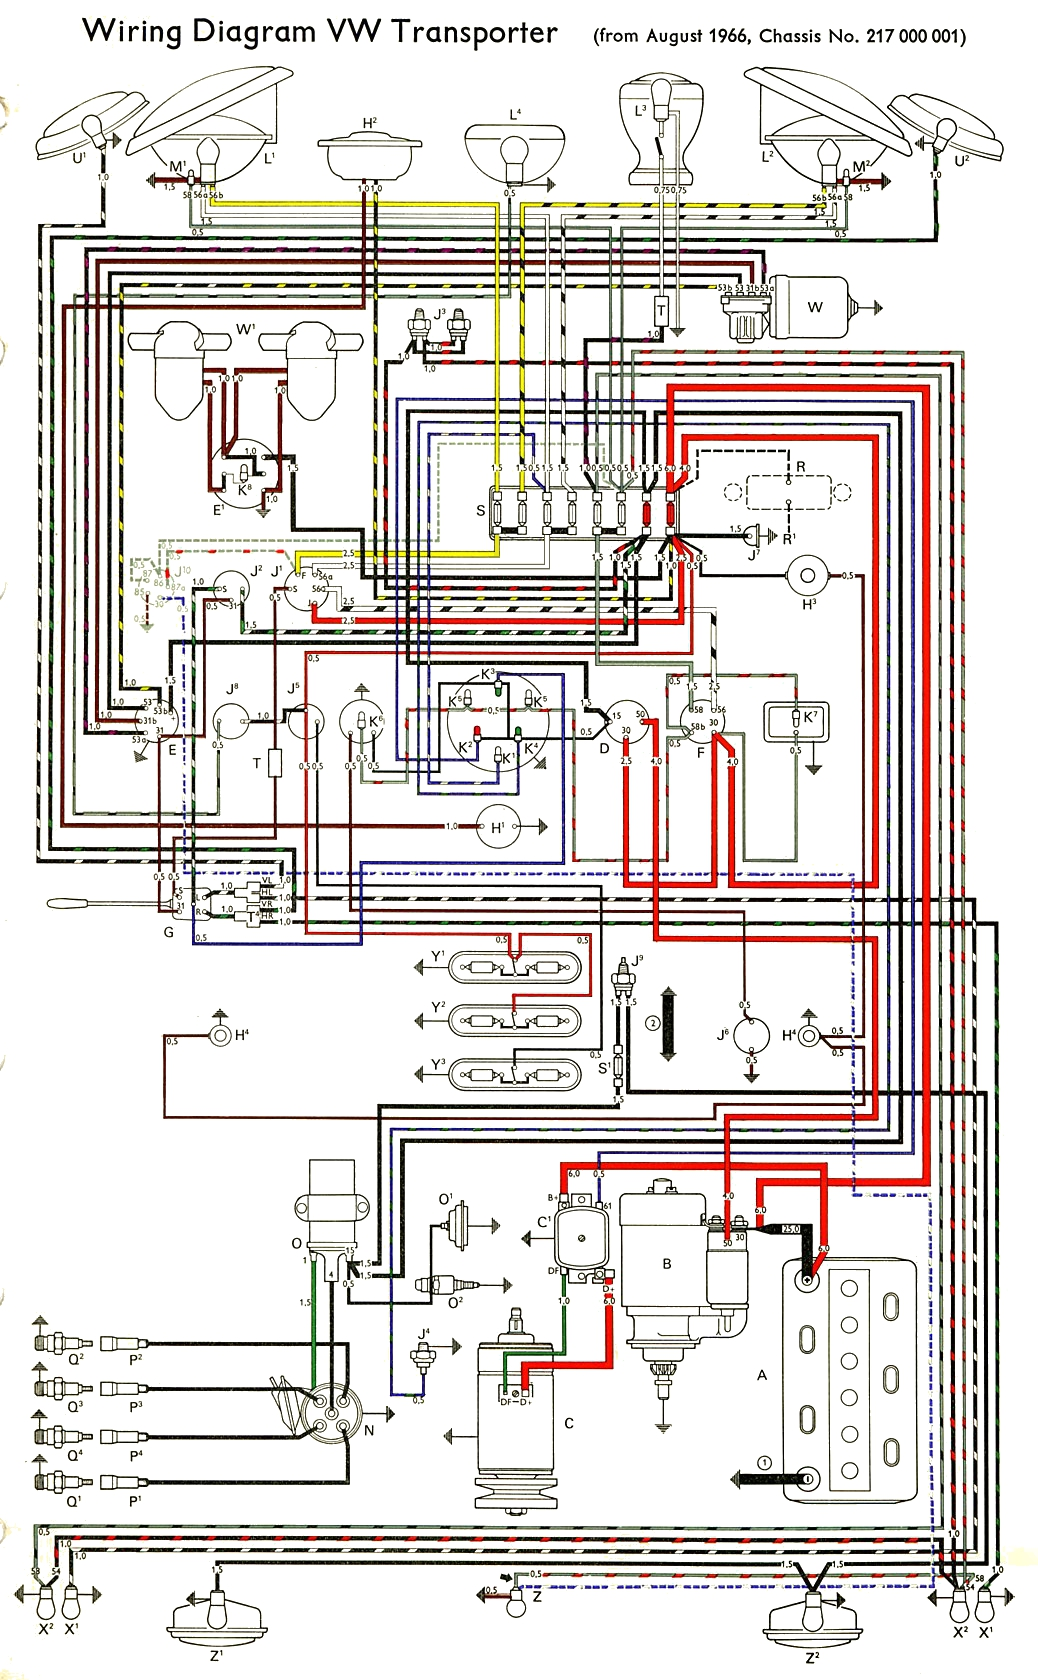 bus_67 thomas buses wiring diagrams detailed schematics diagram